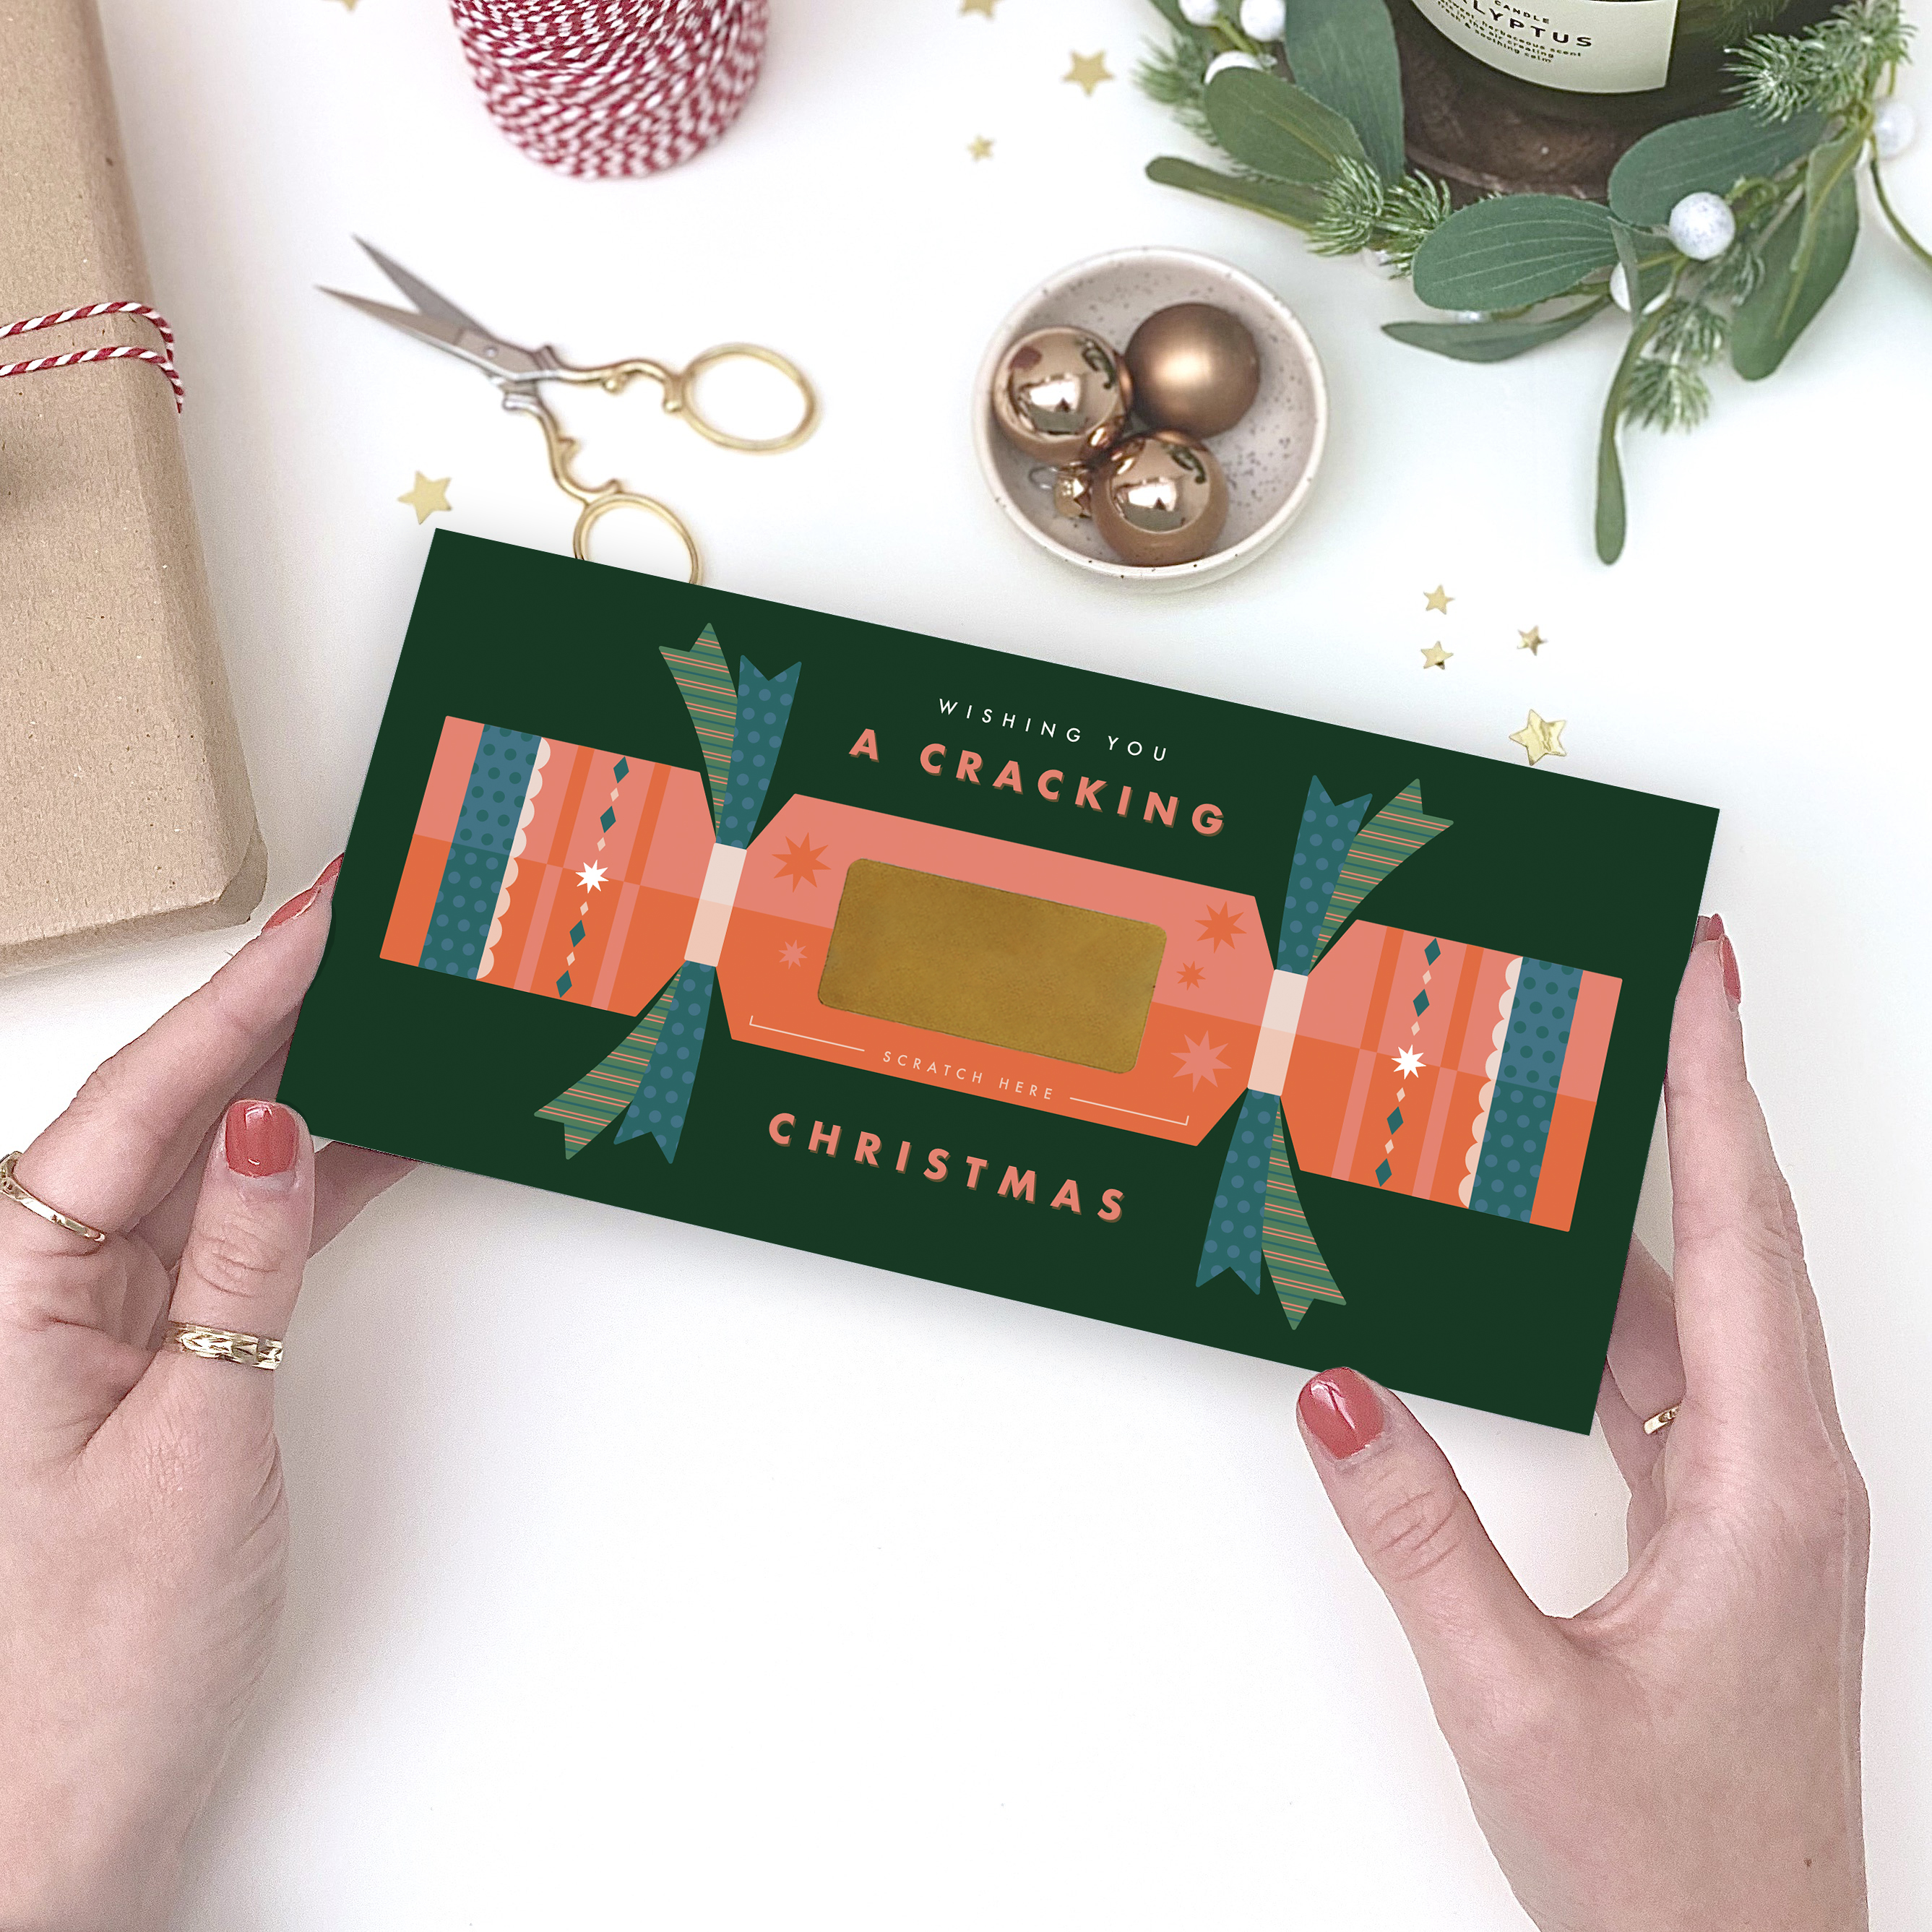 Cracking Christmas Scratch Surprise Card - Designed by Rodo Creative